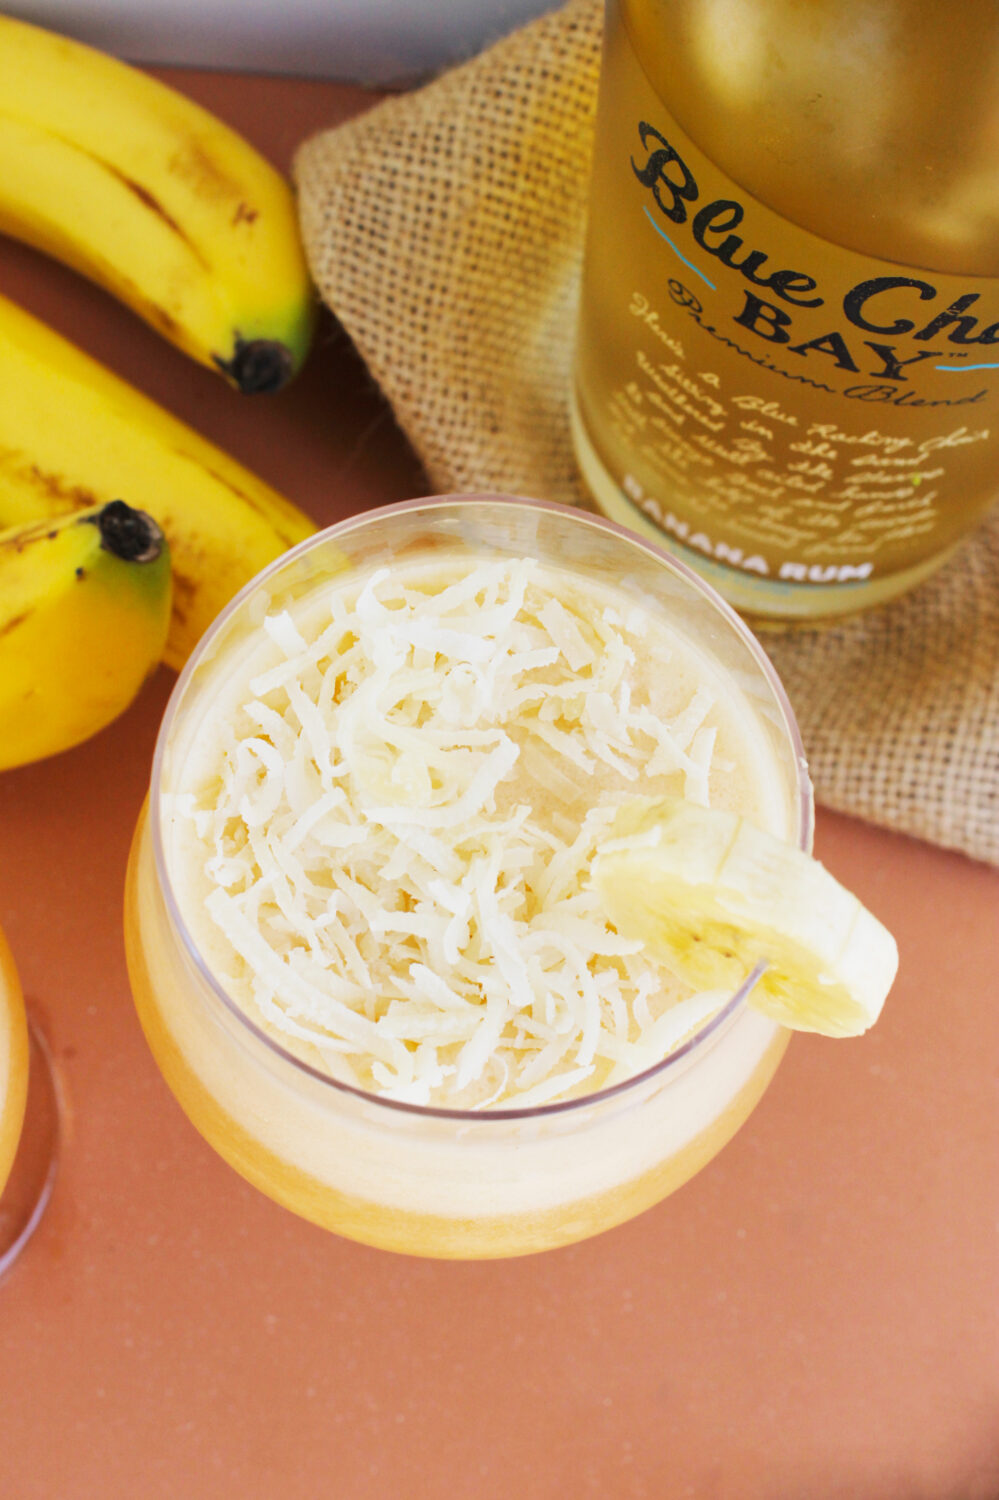 Looking for a stellar warm weather cocktail recipe? This Banana Colada from lifestyle blogger Carly of Lipgloss & Crayons will hit the spot!